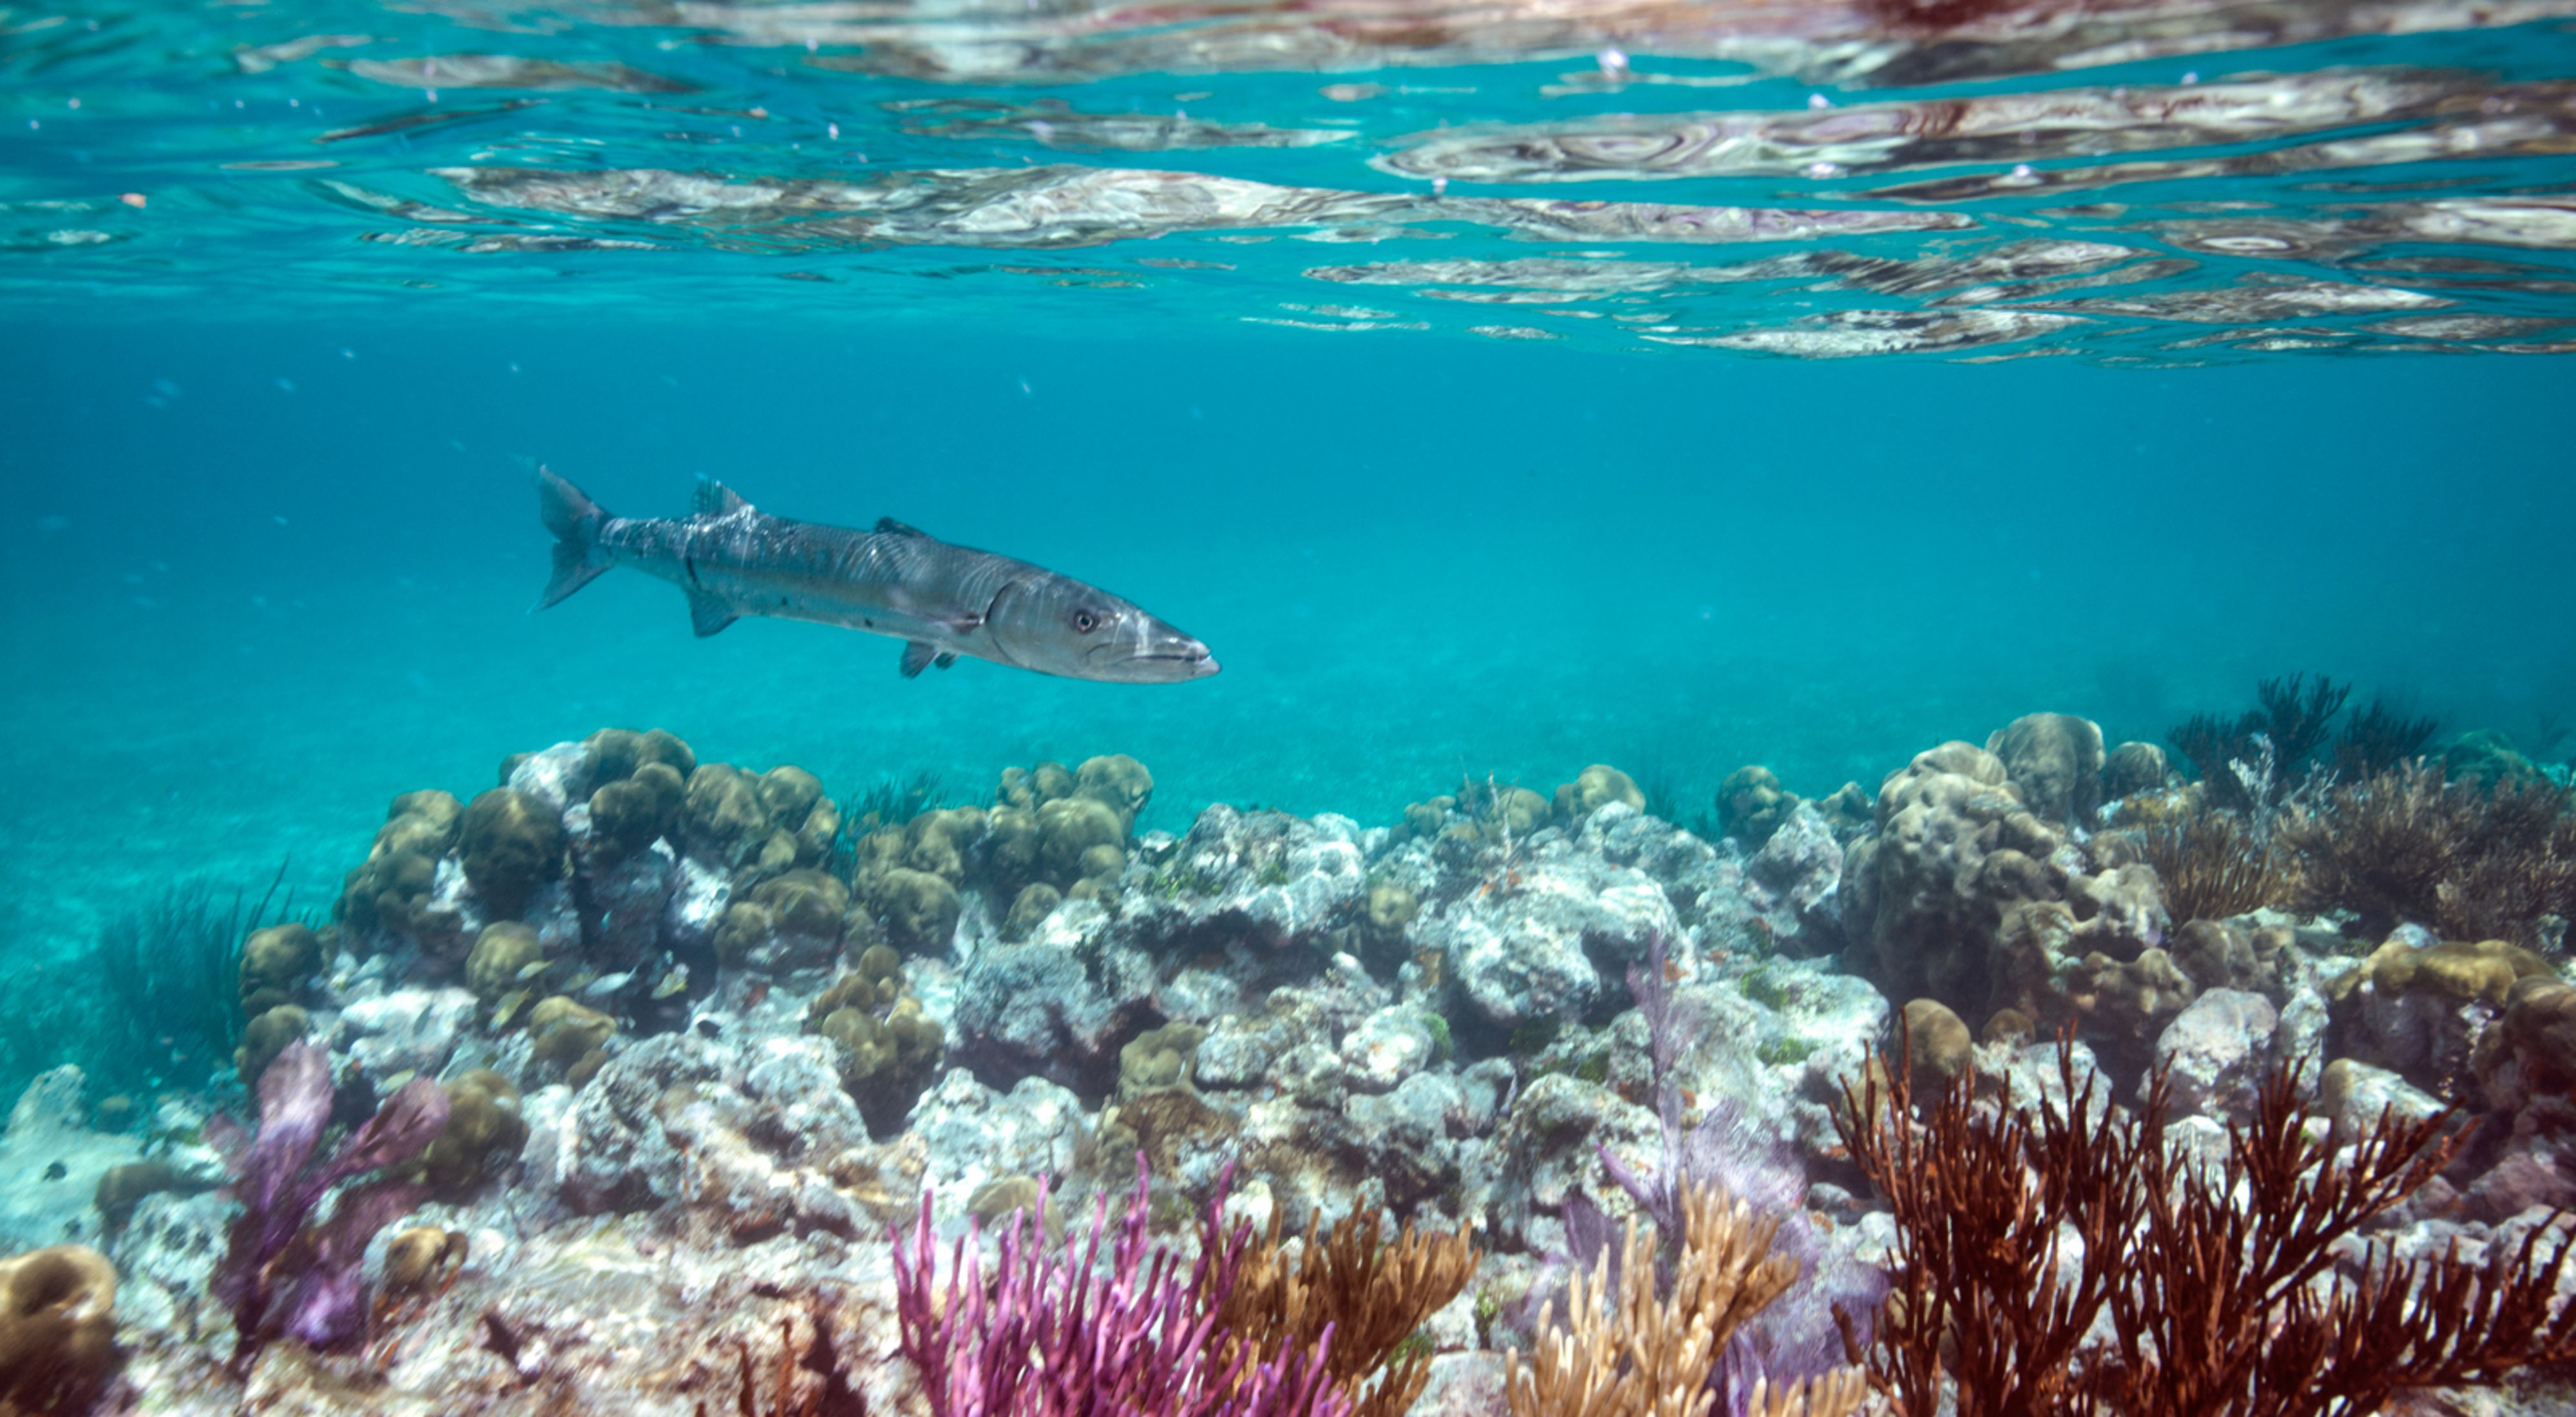 Coral reefs in Florida with fish swimming